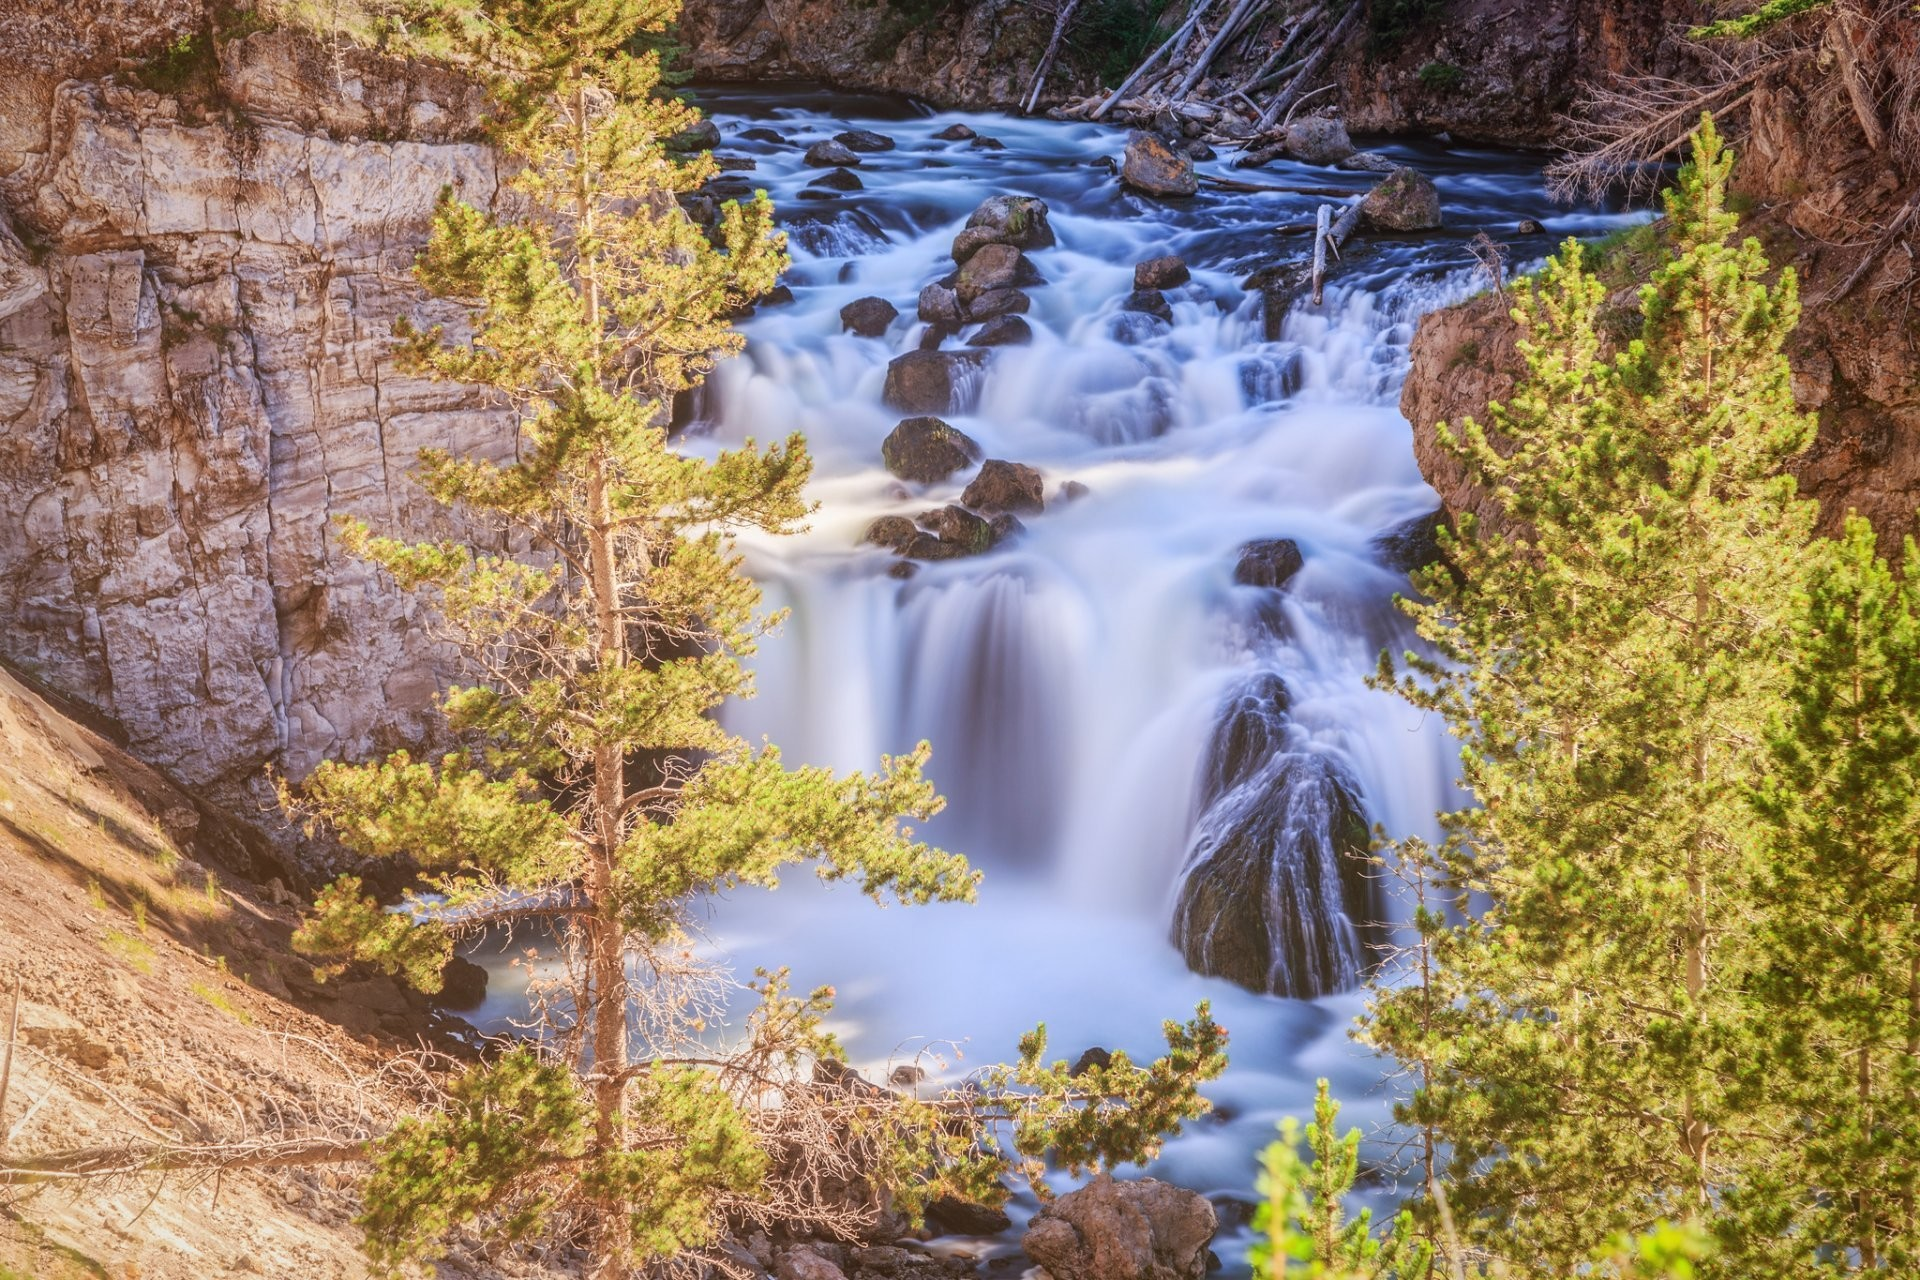 1920x1280 firehole falls yellowstone national park wyoming yellowstone waterfall tree  stones rock HD wallpaper